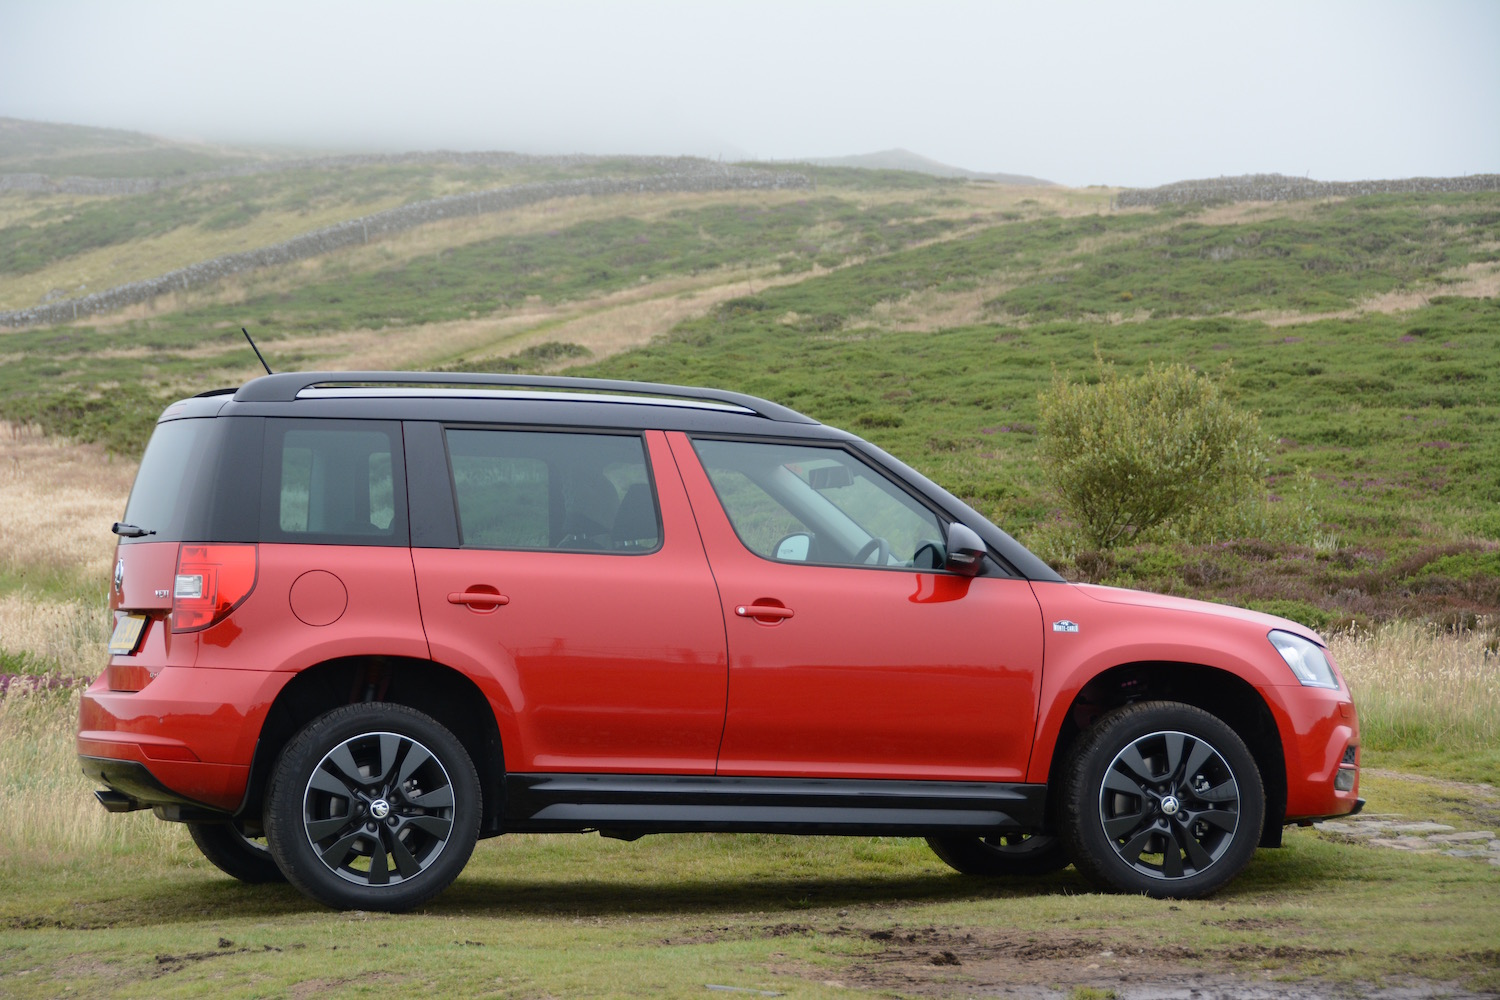 skoda yeti 2 0 tdi 170ps 4x4 review. Black Bedroom Furniture Sets. Home Design Ideas